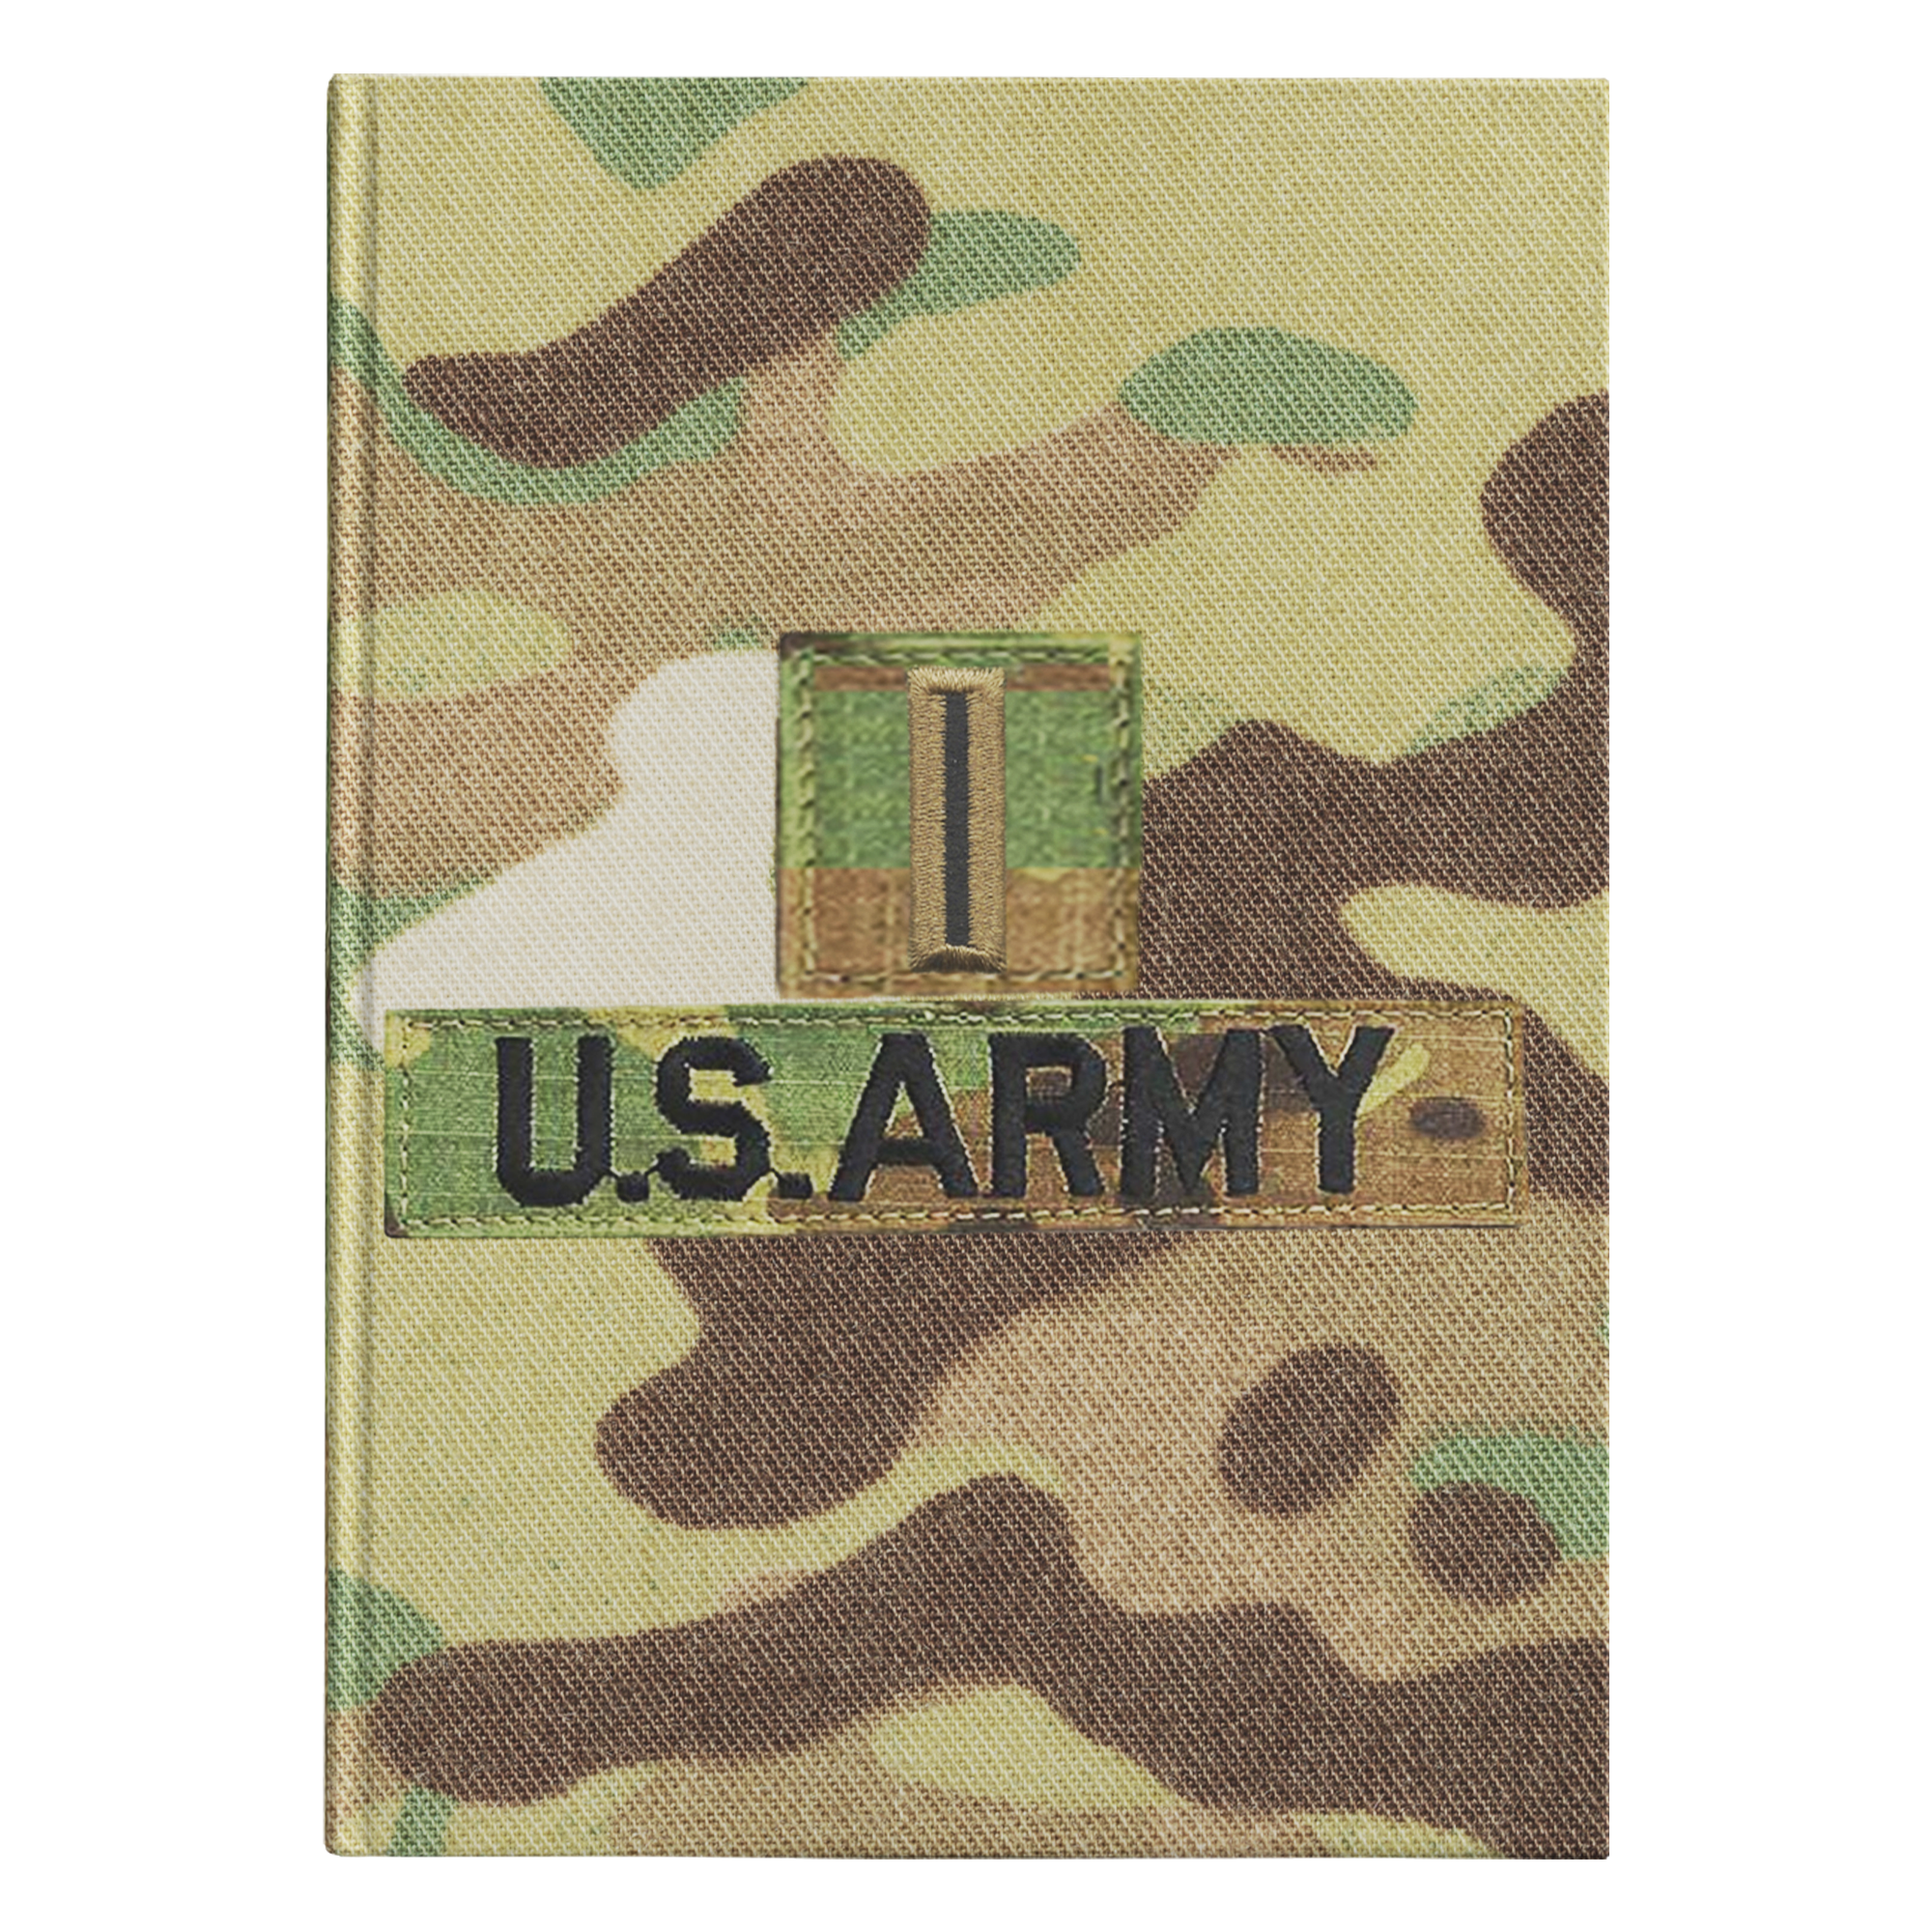 8TH Army Journal - CW5